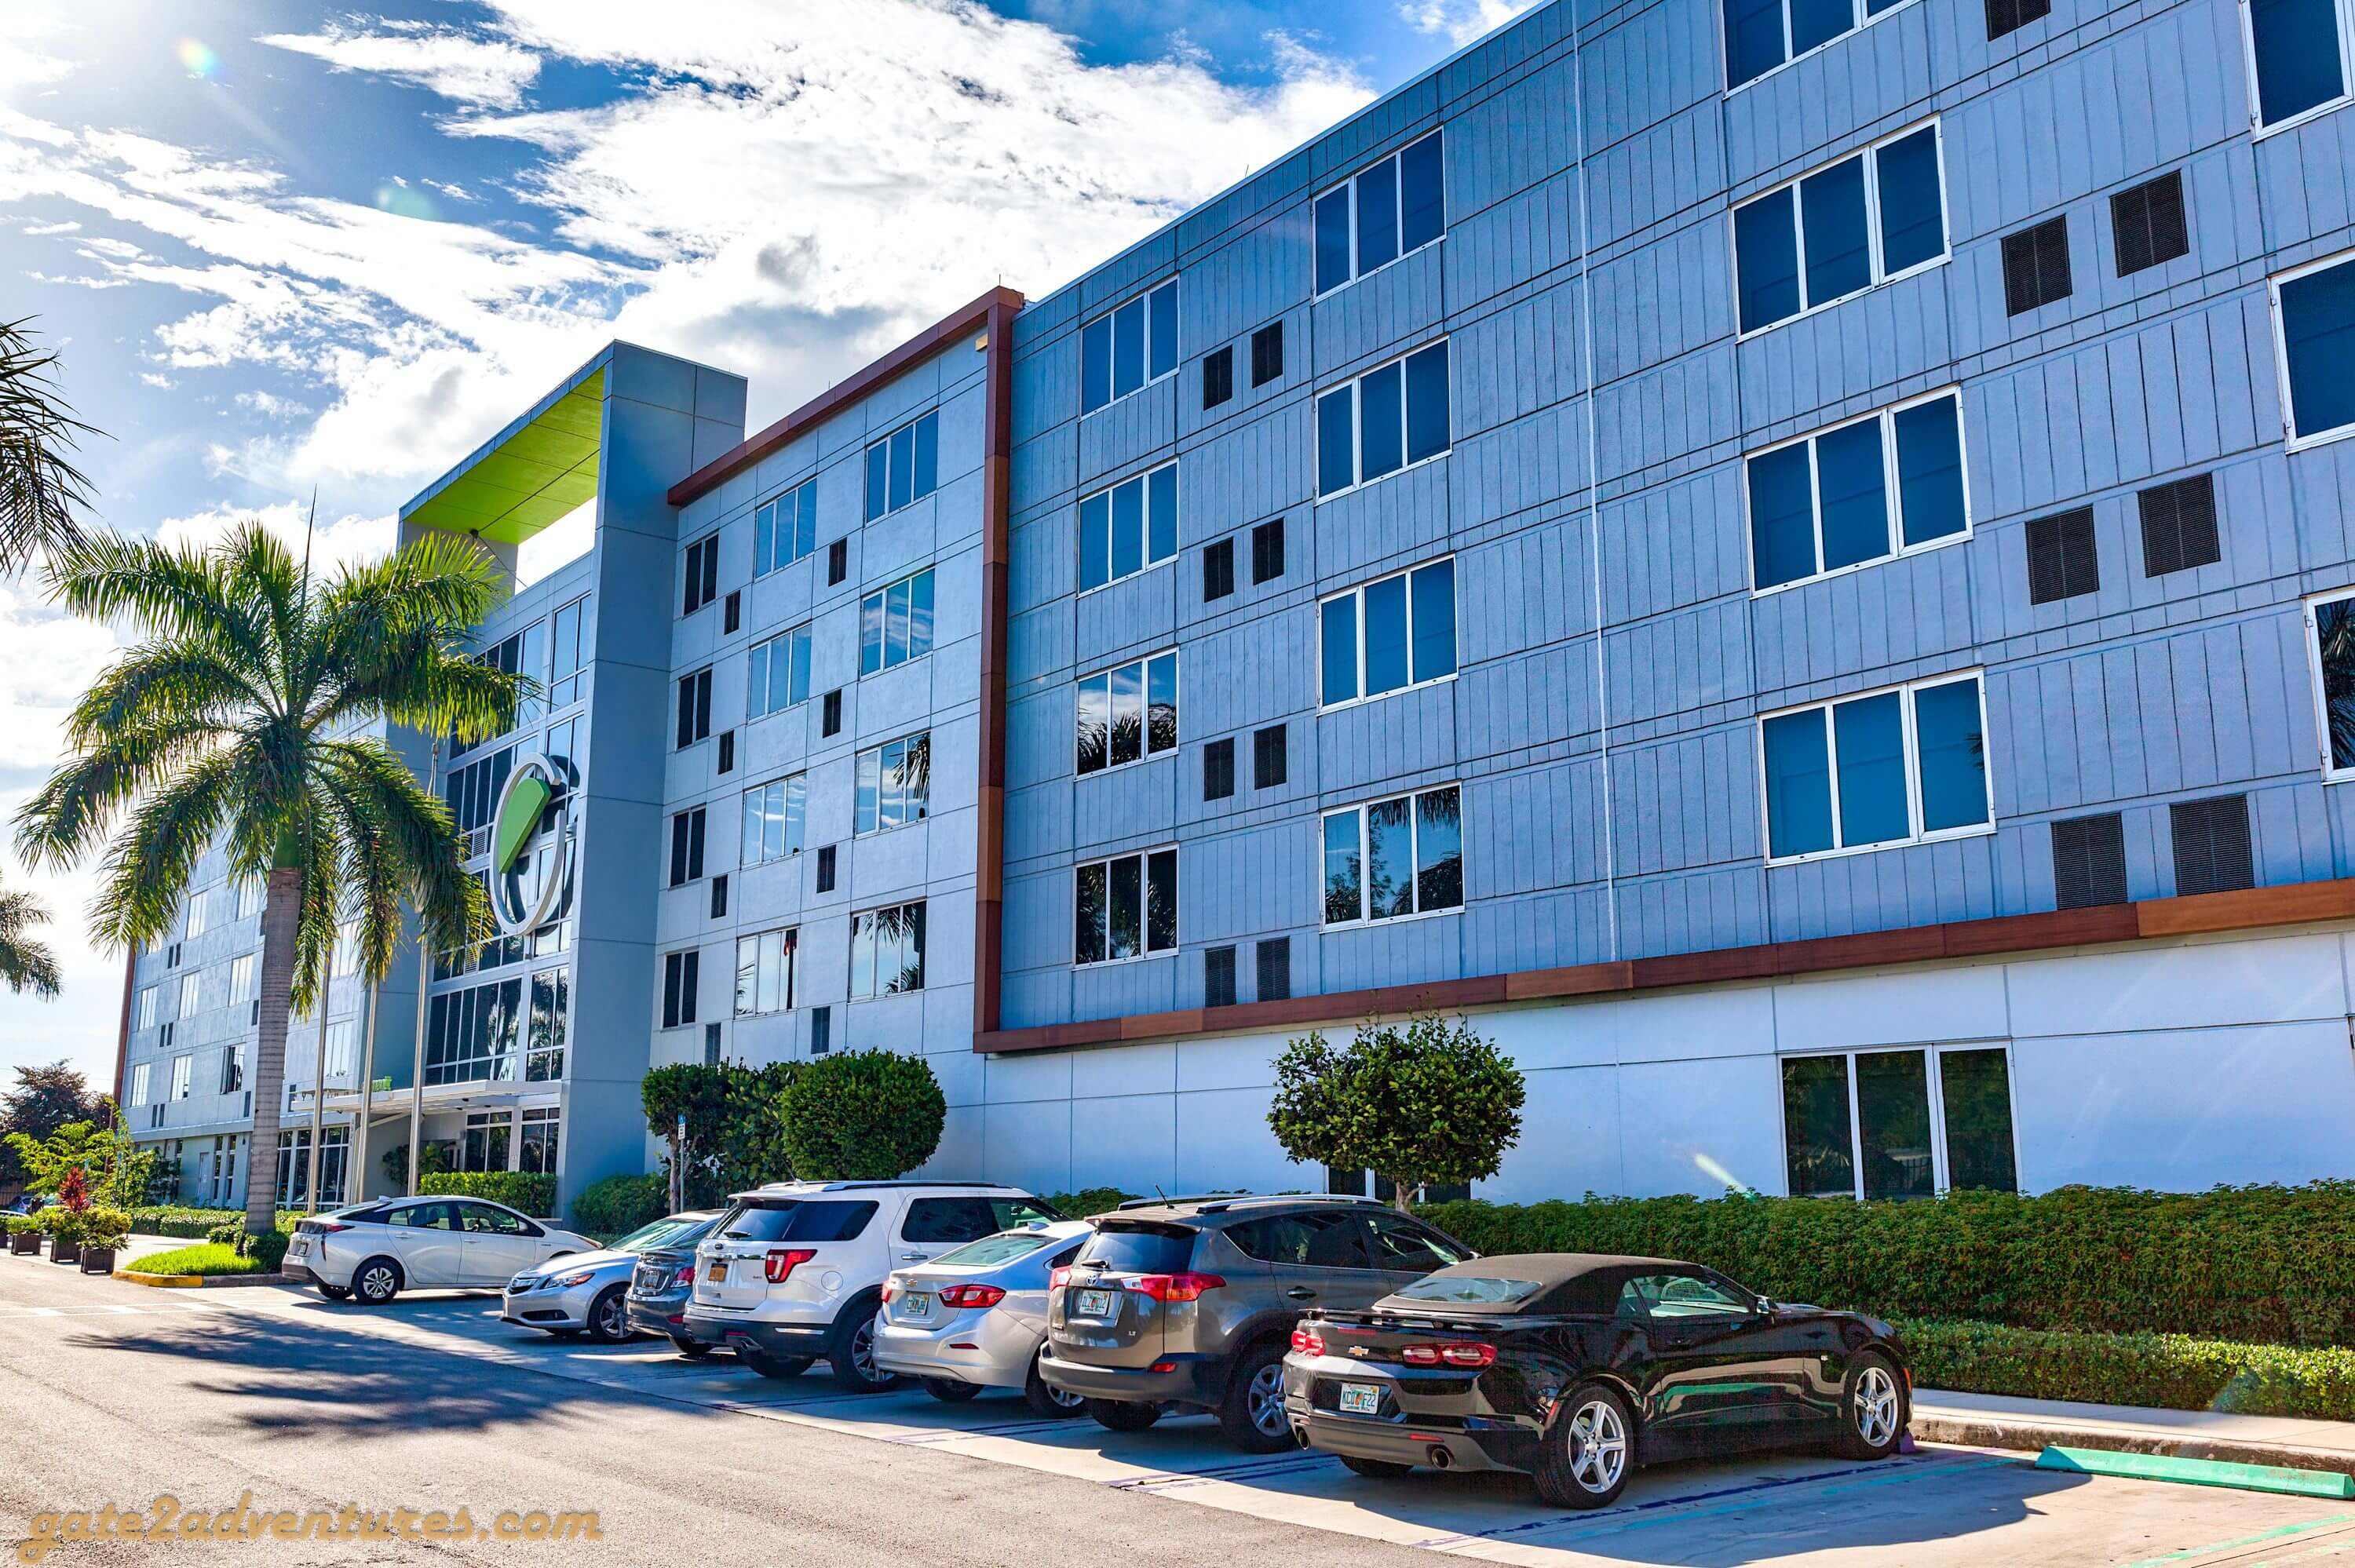 Element Miami International Airport Review - Gate to Adventures